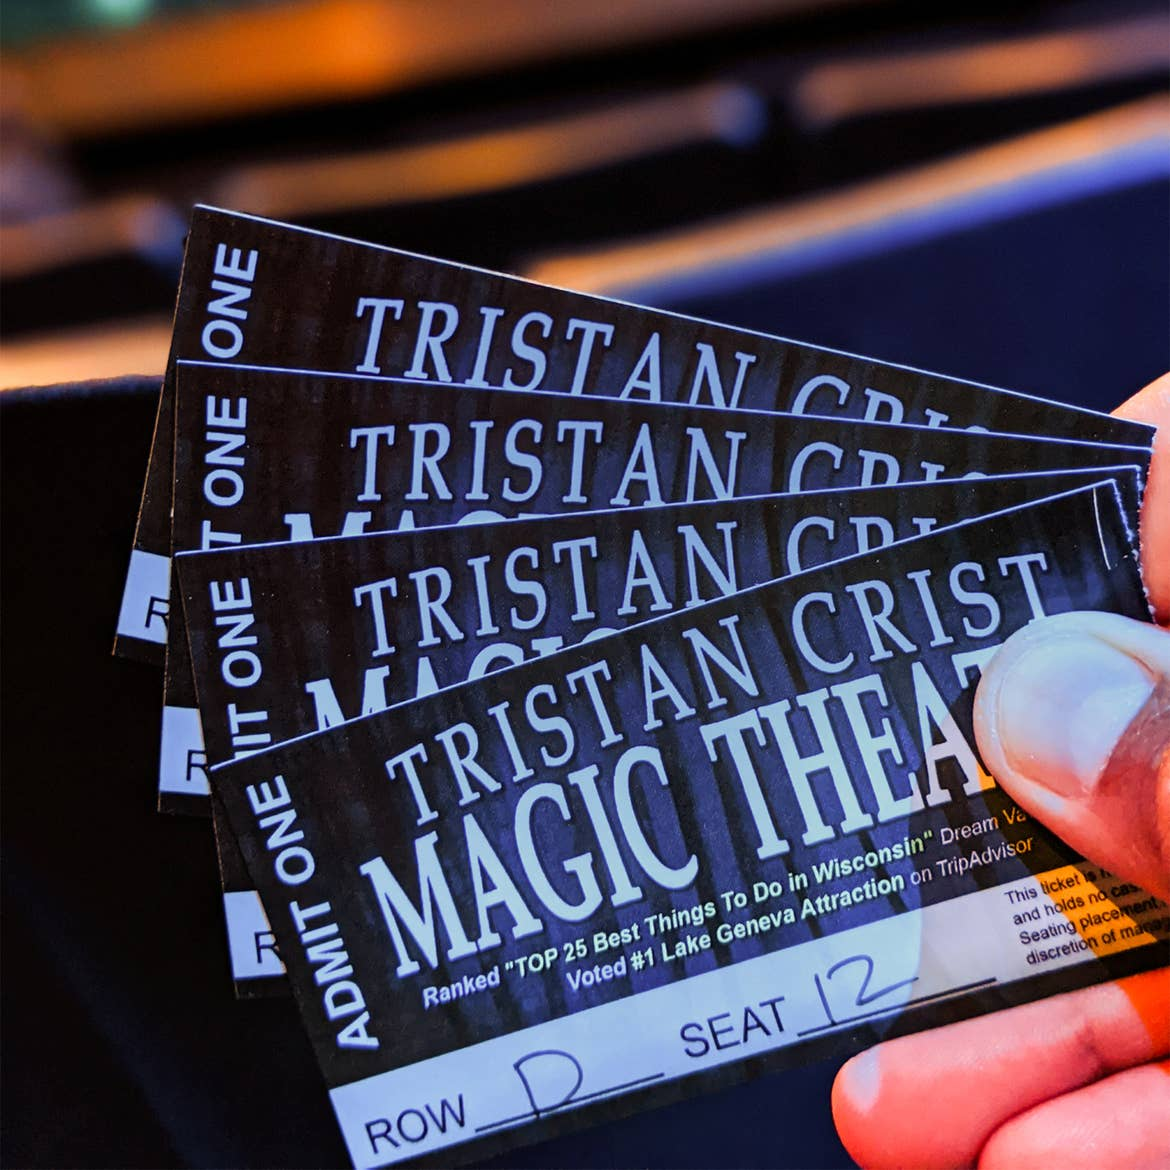 A hand holding tickets.